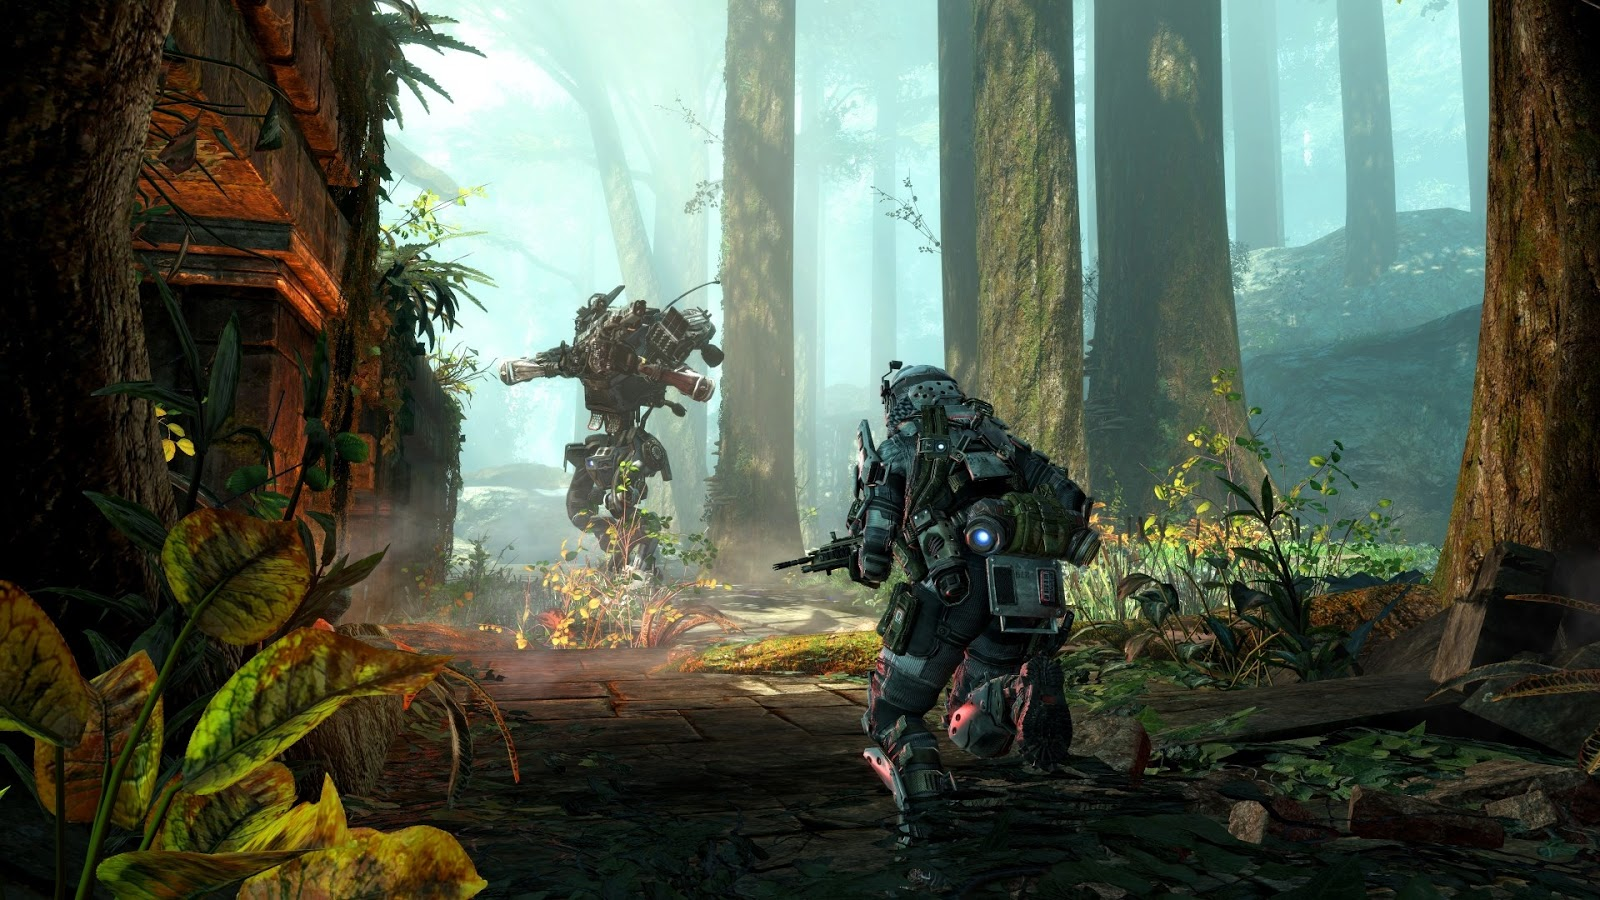 Titanfall DLC Expedition Screenshots